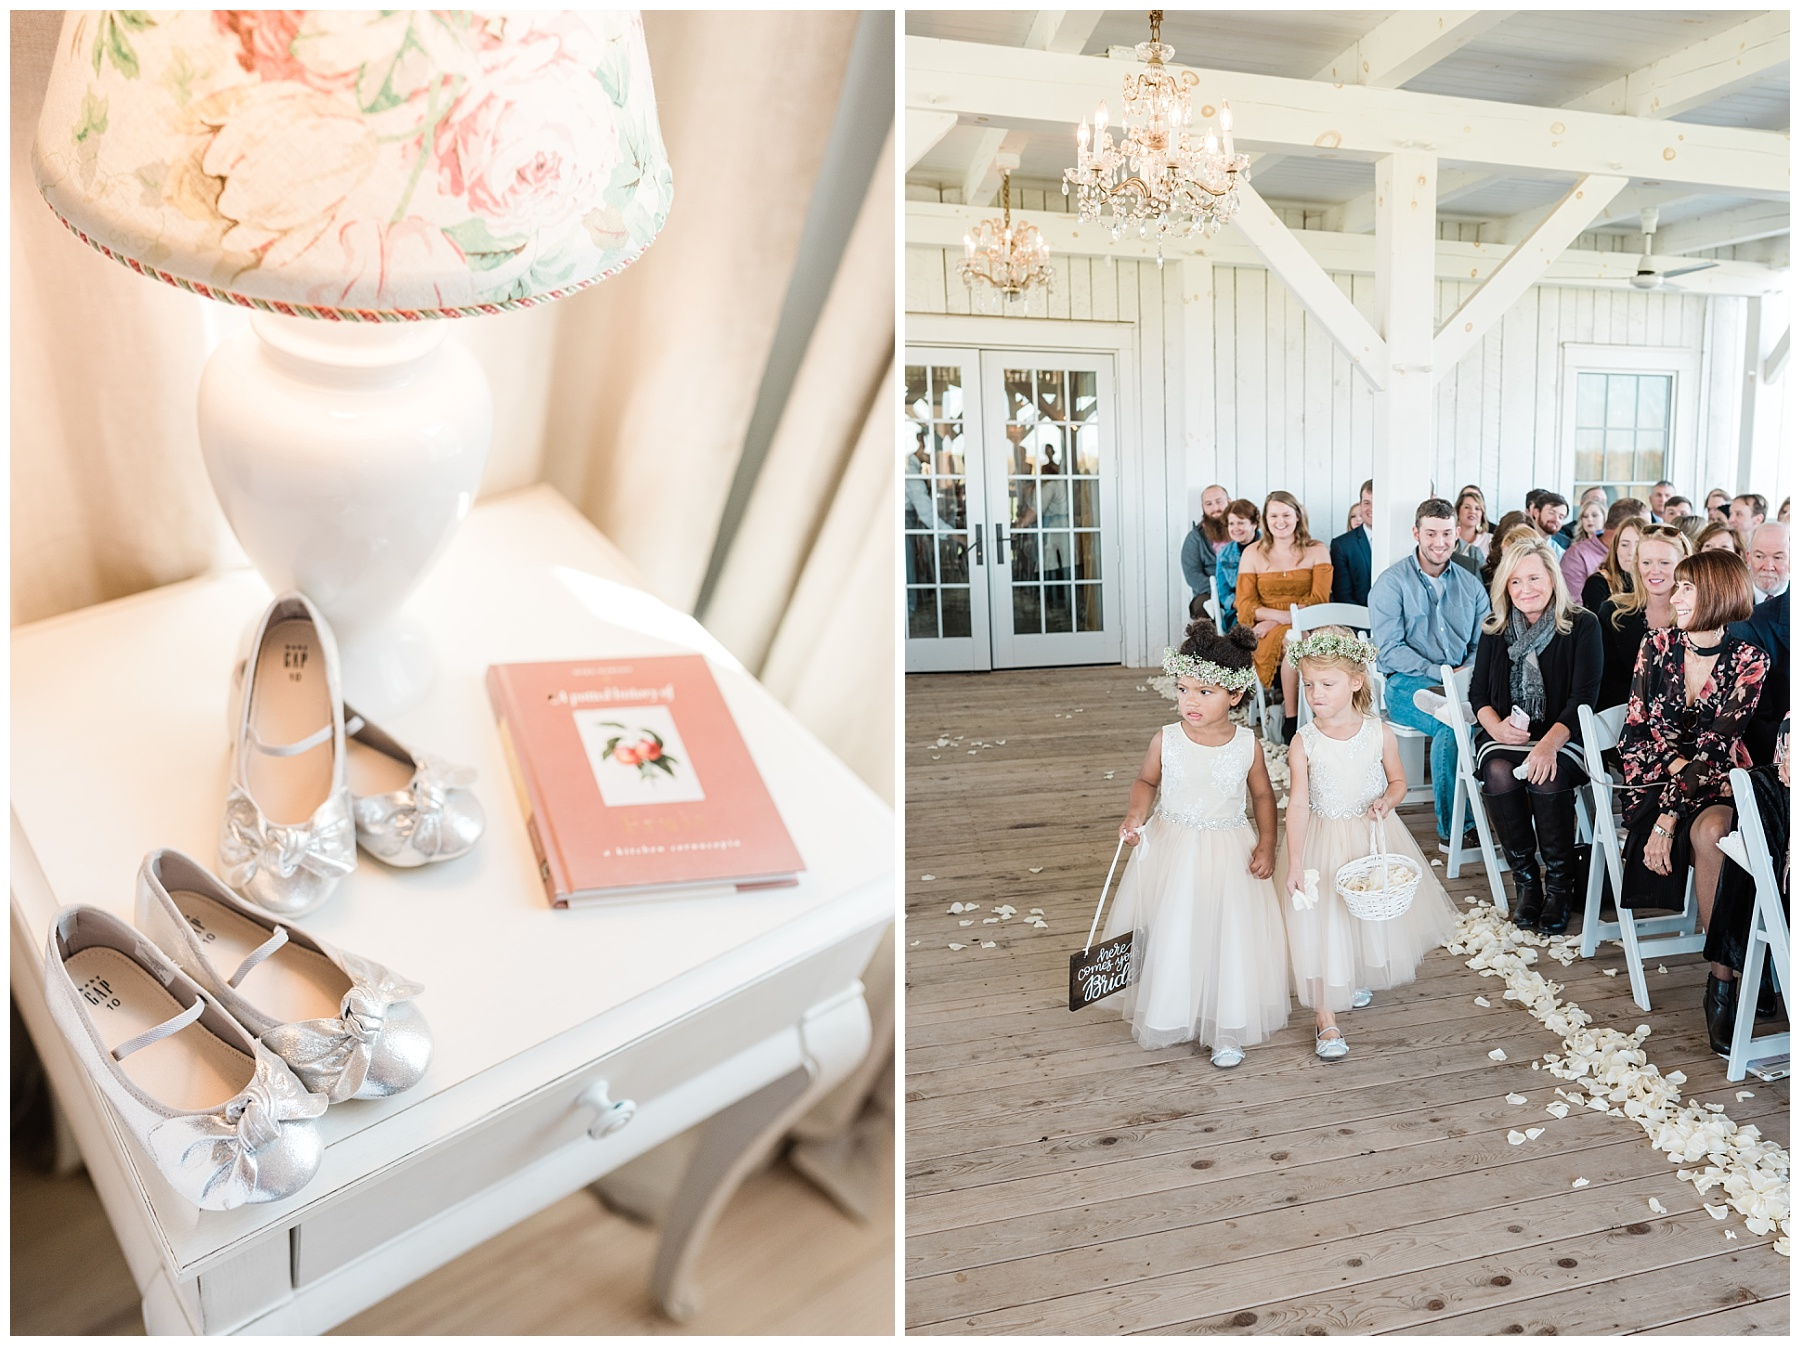 Golden Autumn Outdoor Wedding with Ivory, Bergundy, and Blush Color Palette at Blue Bell Farms  by Kelsi Kliethermes Photography_0001.jpg